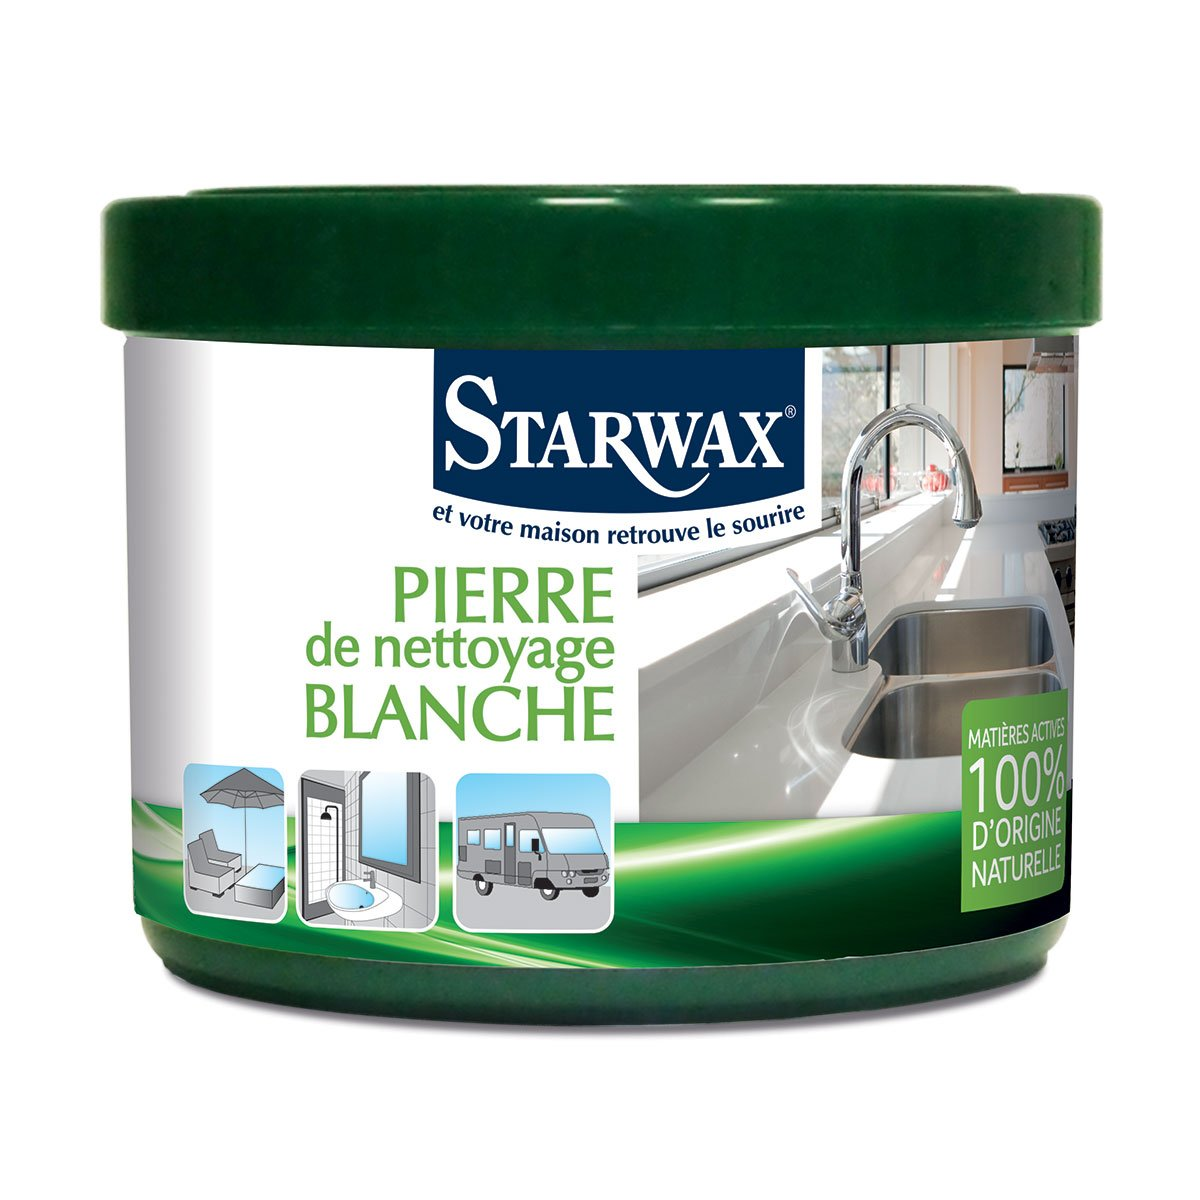 pierre blanche de nettoyage avec mati res actives 100 d 39 origine naturelle starwax produits d. Black Bedroom Furniture Sets. Home Design Ideas